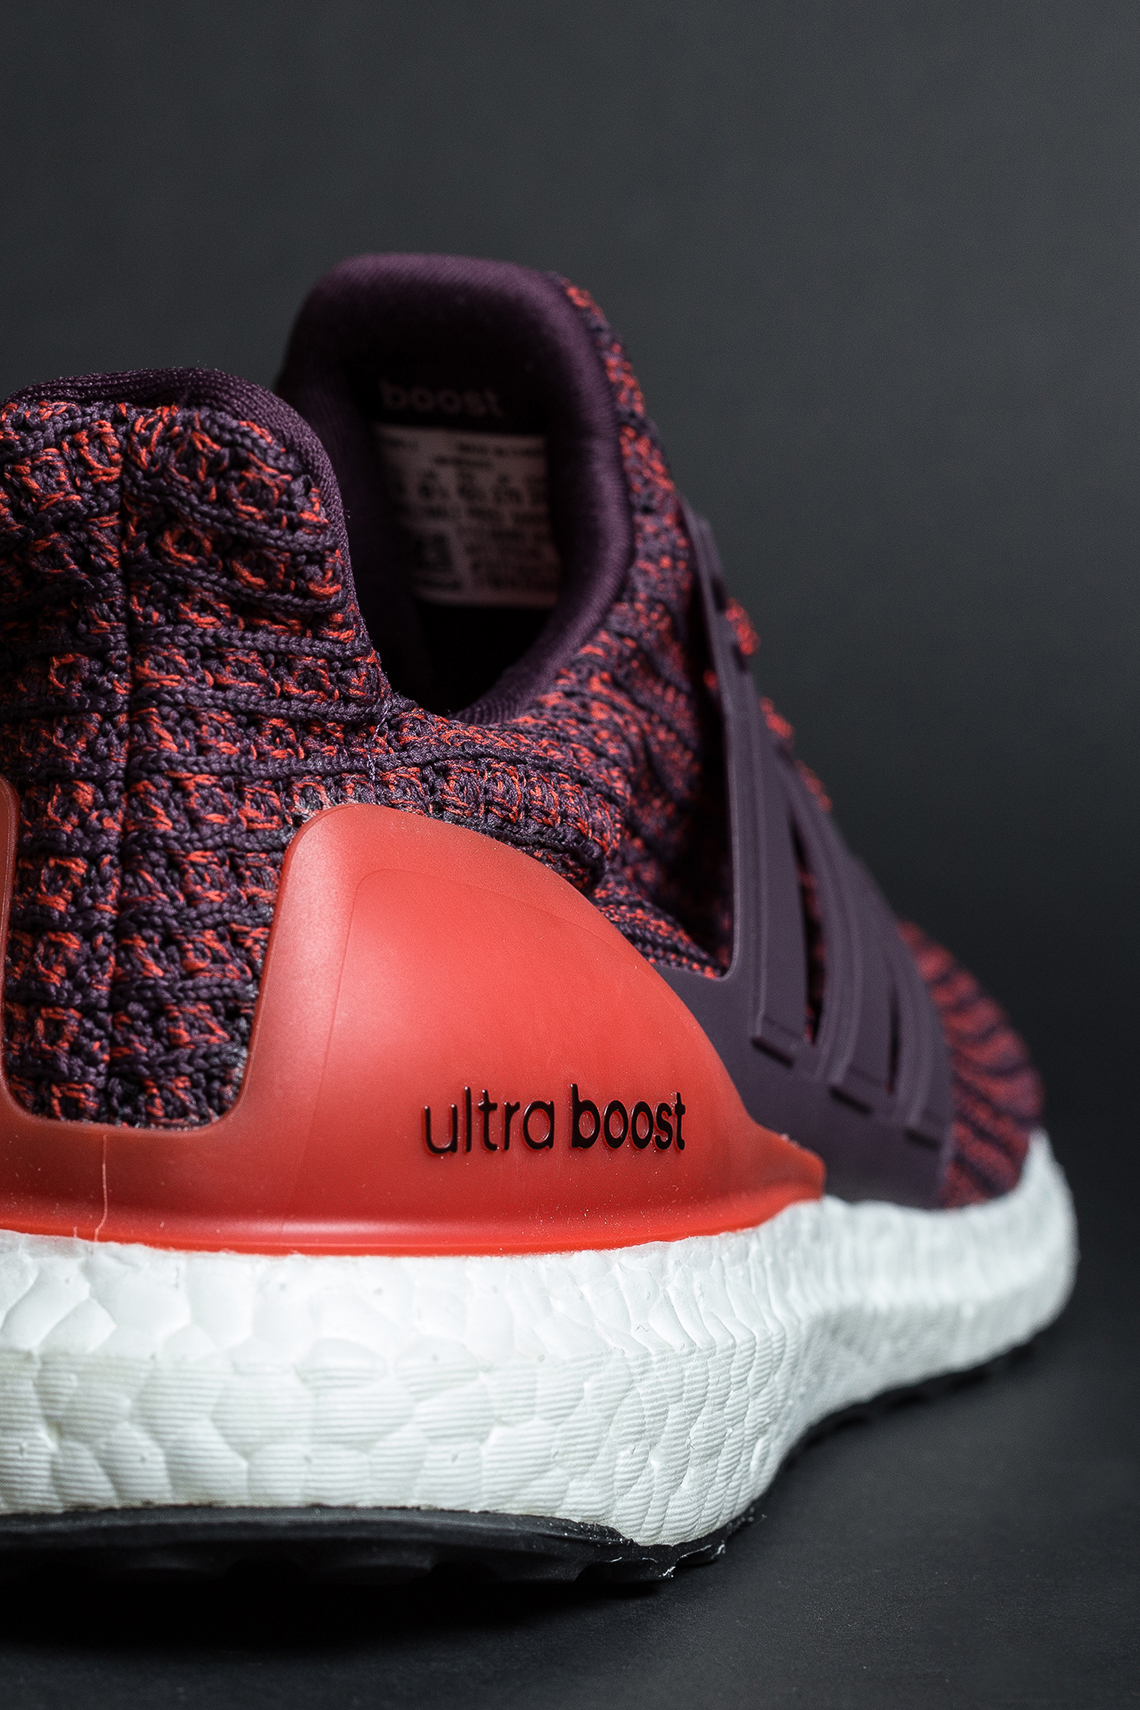 Adidas Ultraboost 4.0 CNY (CHINESE NEW YEAR) Review